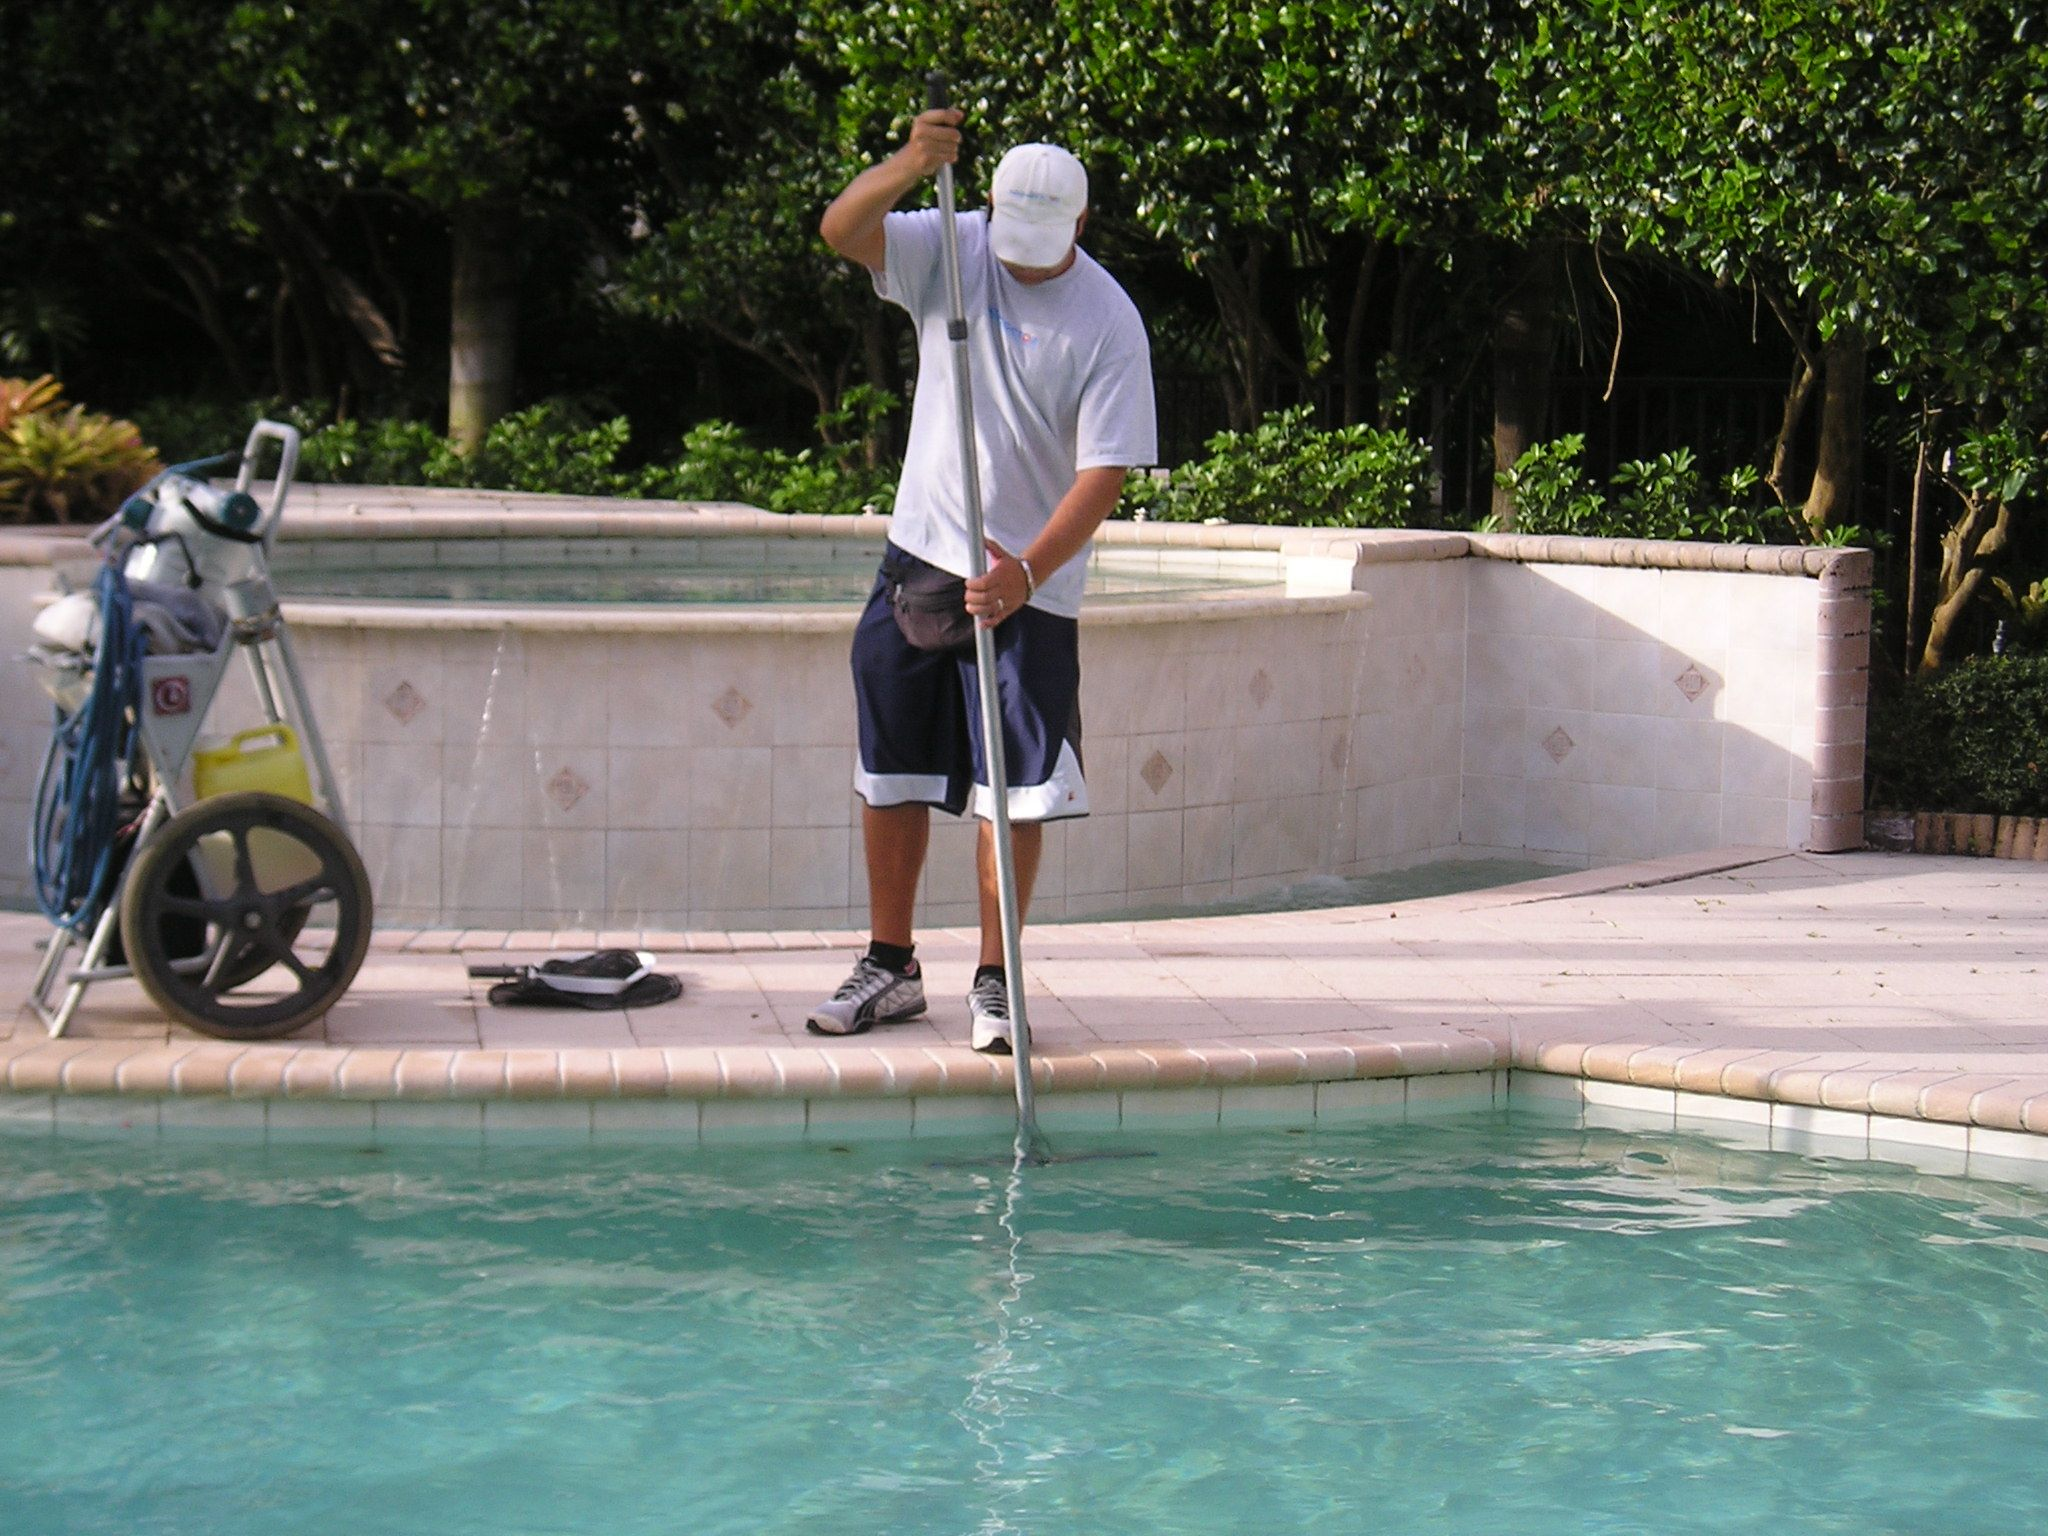 Poolsdxb Swimming Pool Services Is A Full Service Commercial Pool Management Company With A